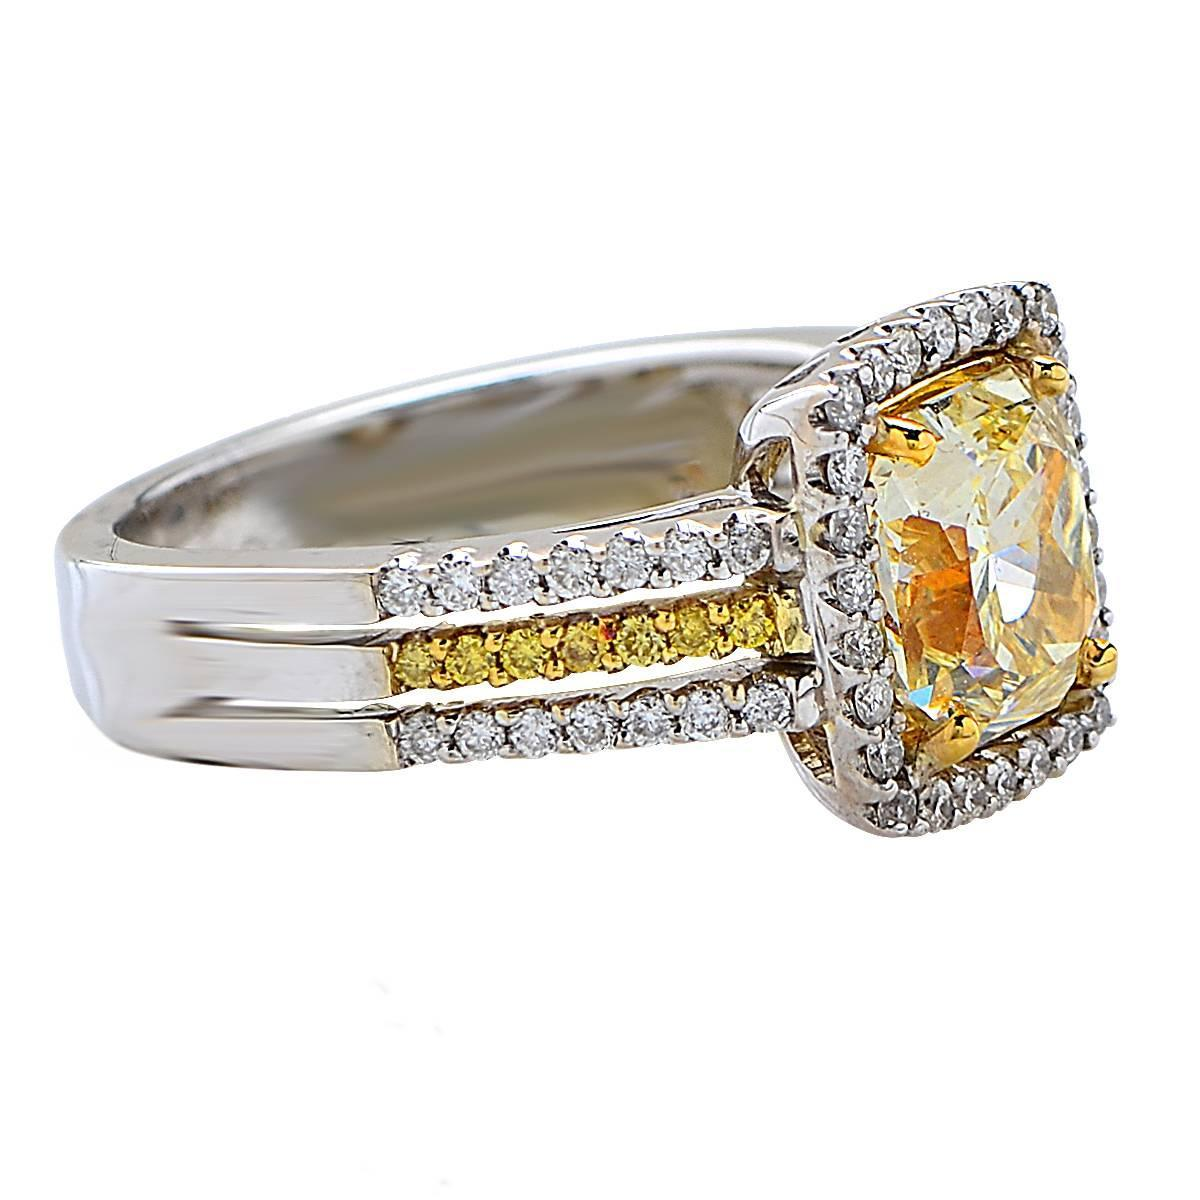 2 03 Carat Natural Light Yellow Diamond Gold Ring For Sale at 1stdibs